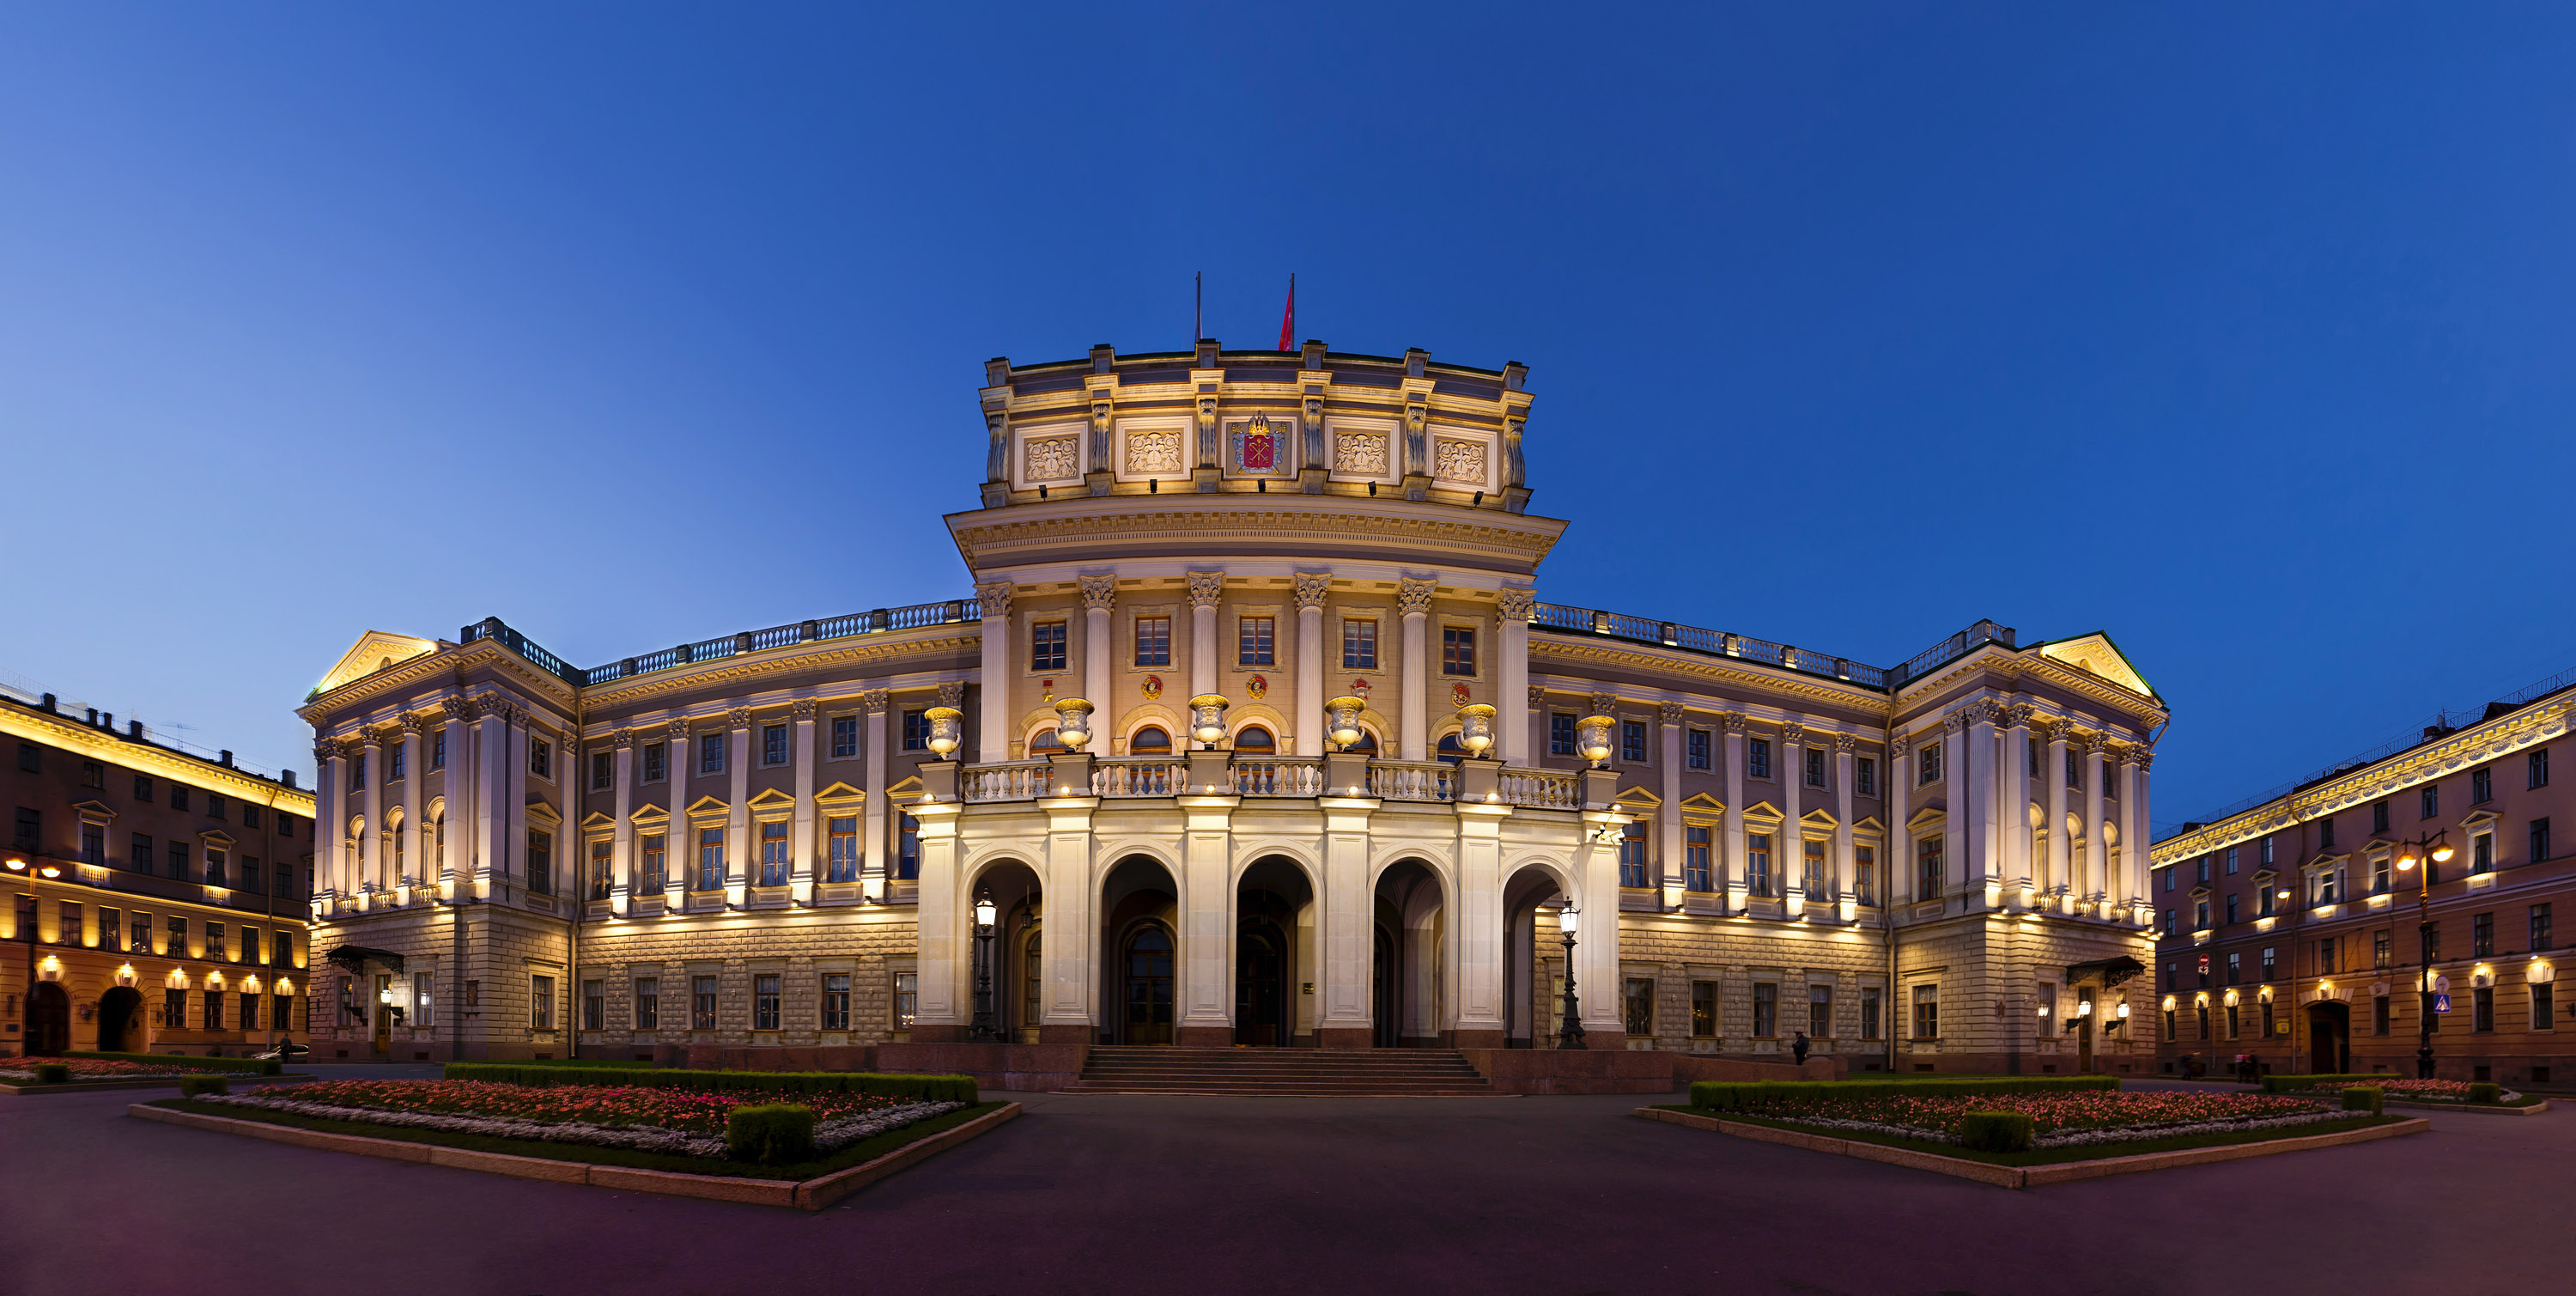 https://upload.wikimedia.org/wikipedia/commons/0/0a/St_Petersburg%2C_Mariinskiy_Palace_2.jpg